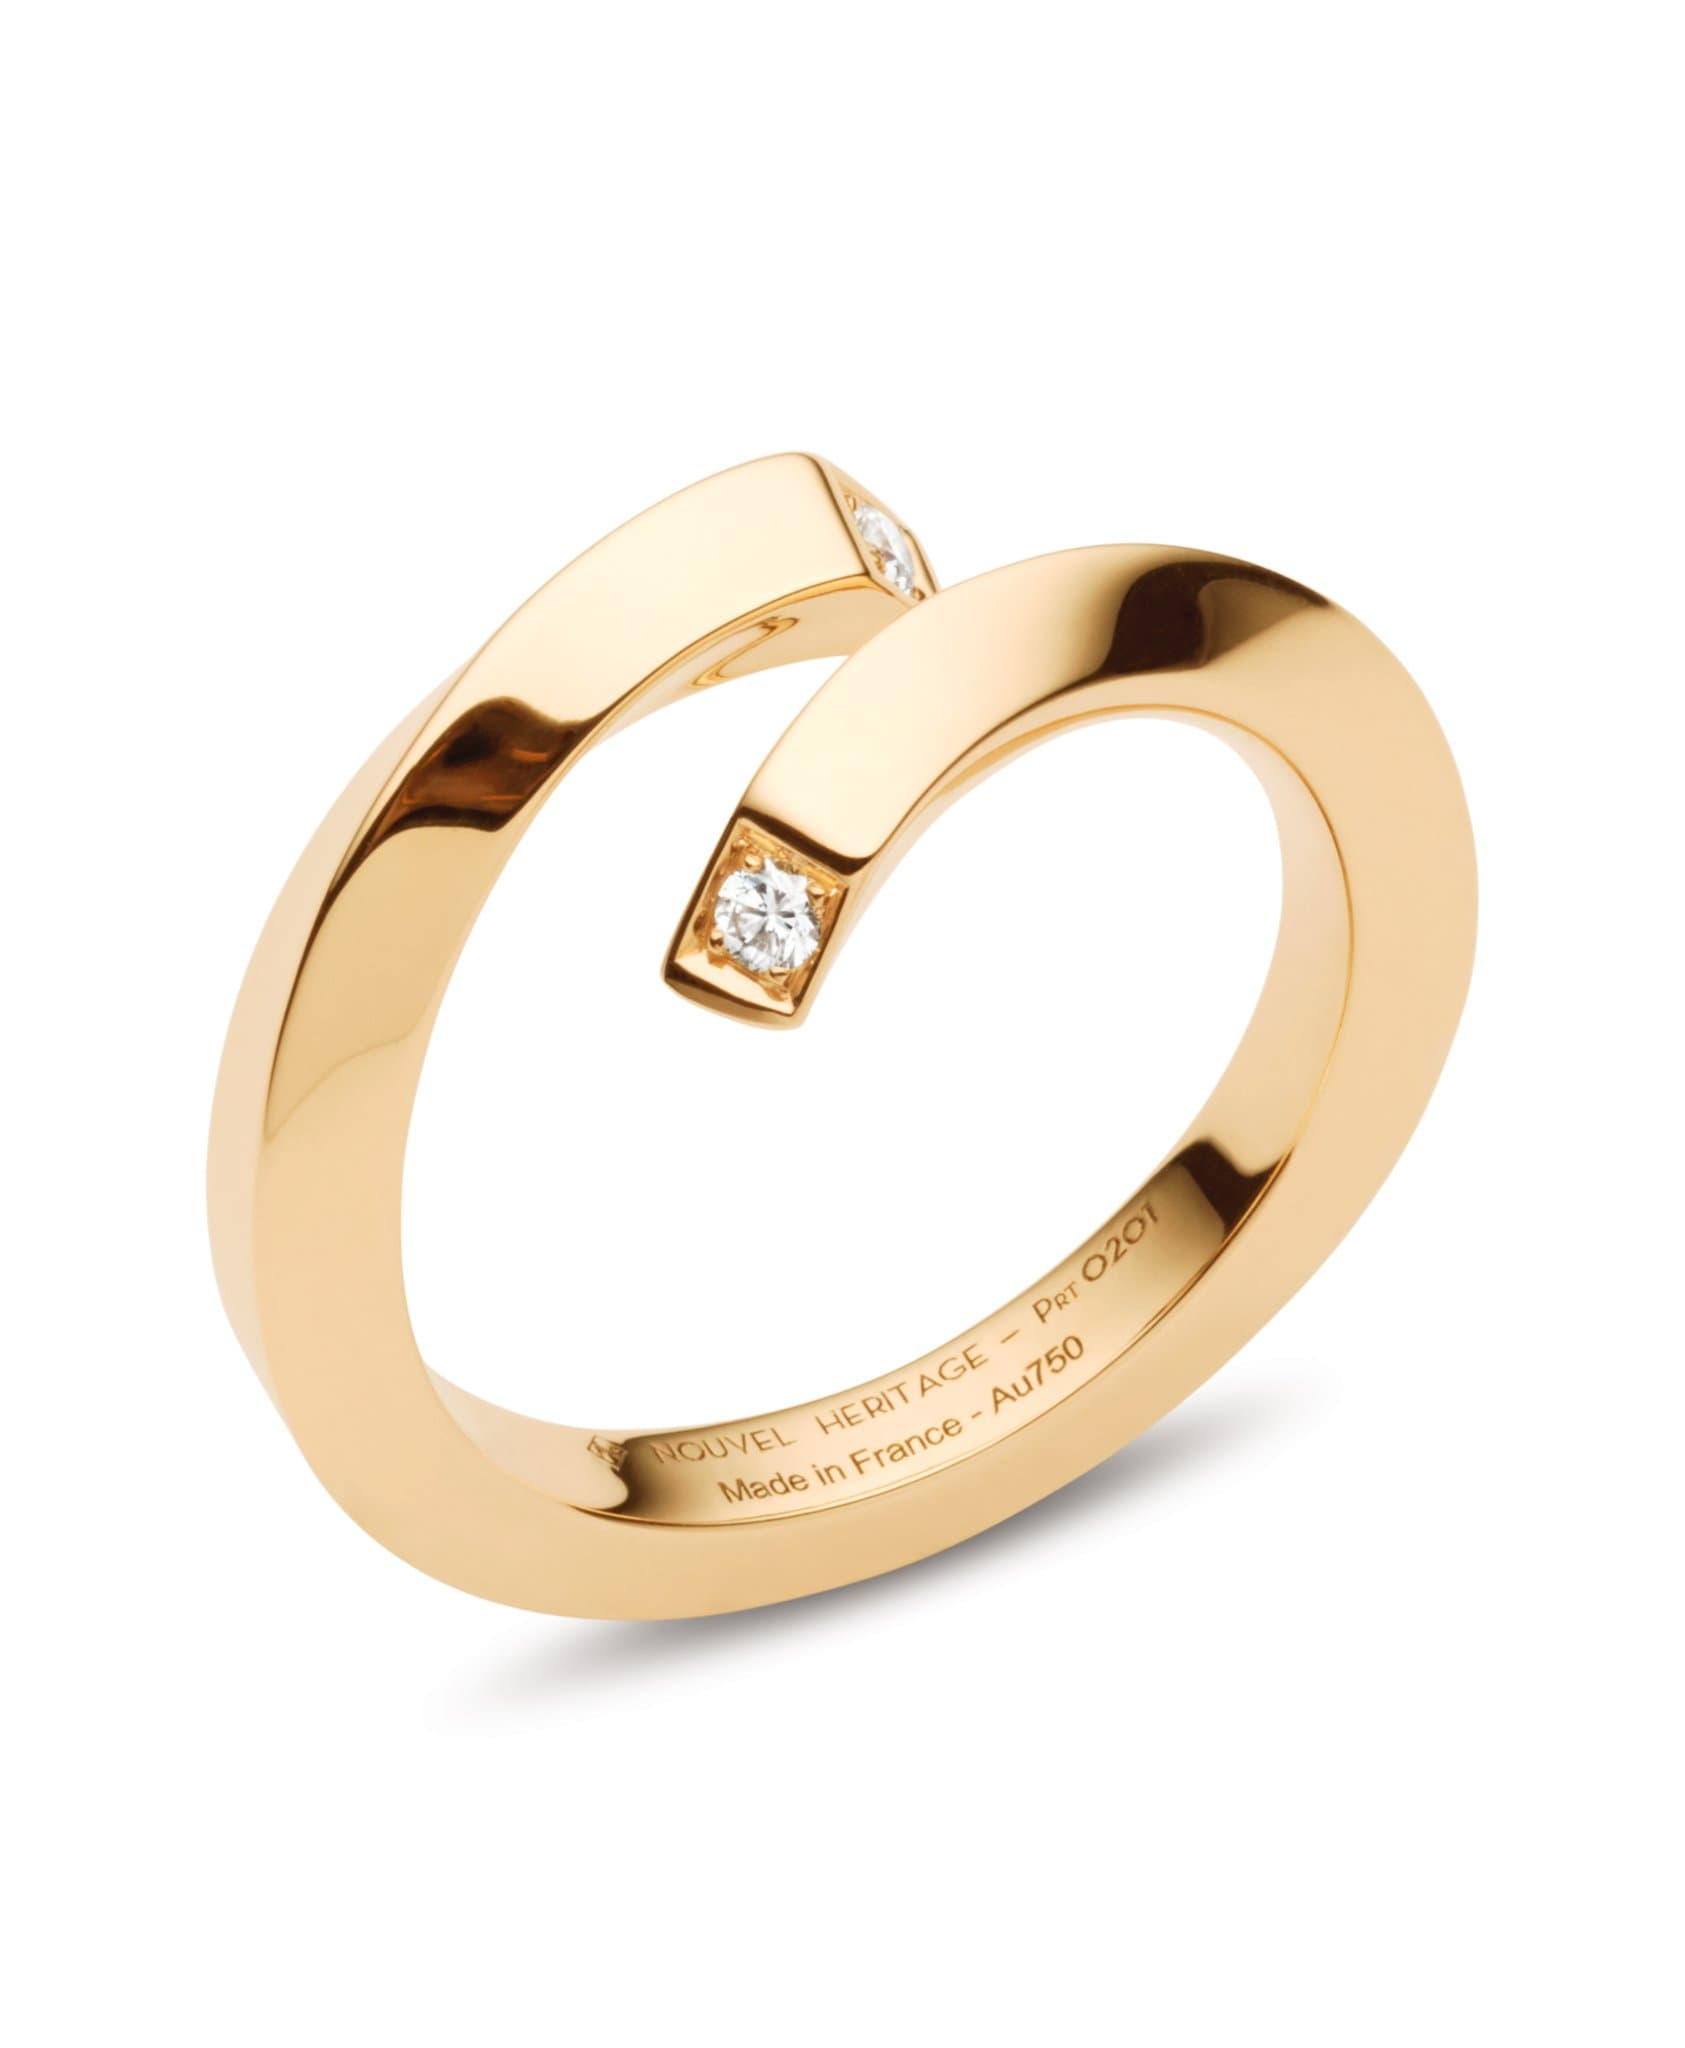 Gold Thread Ring: Discover Luxury Fine Jewelry | Nouvel Heritage